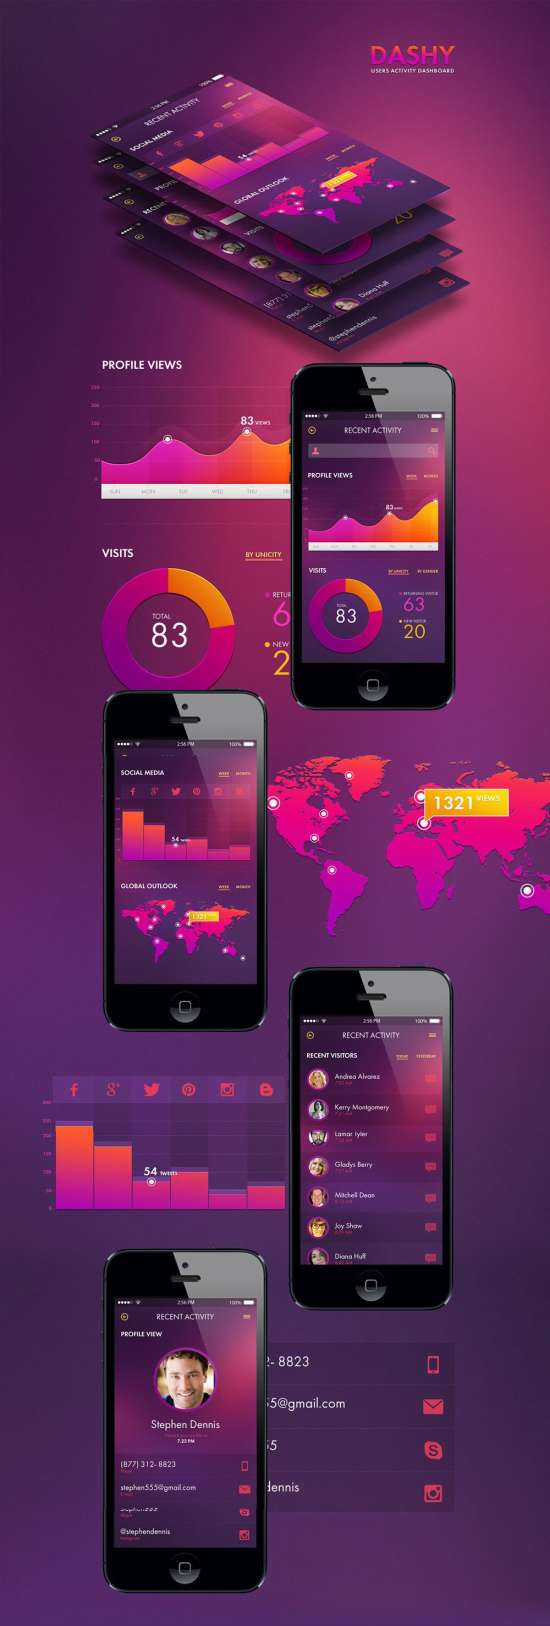 dashy_mobile_app_ui_psd